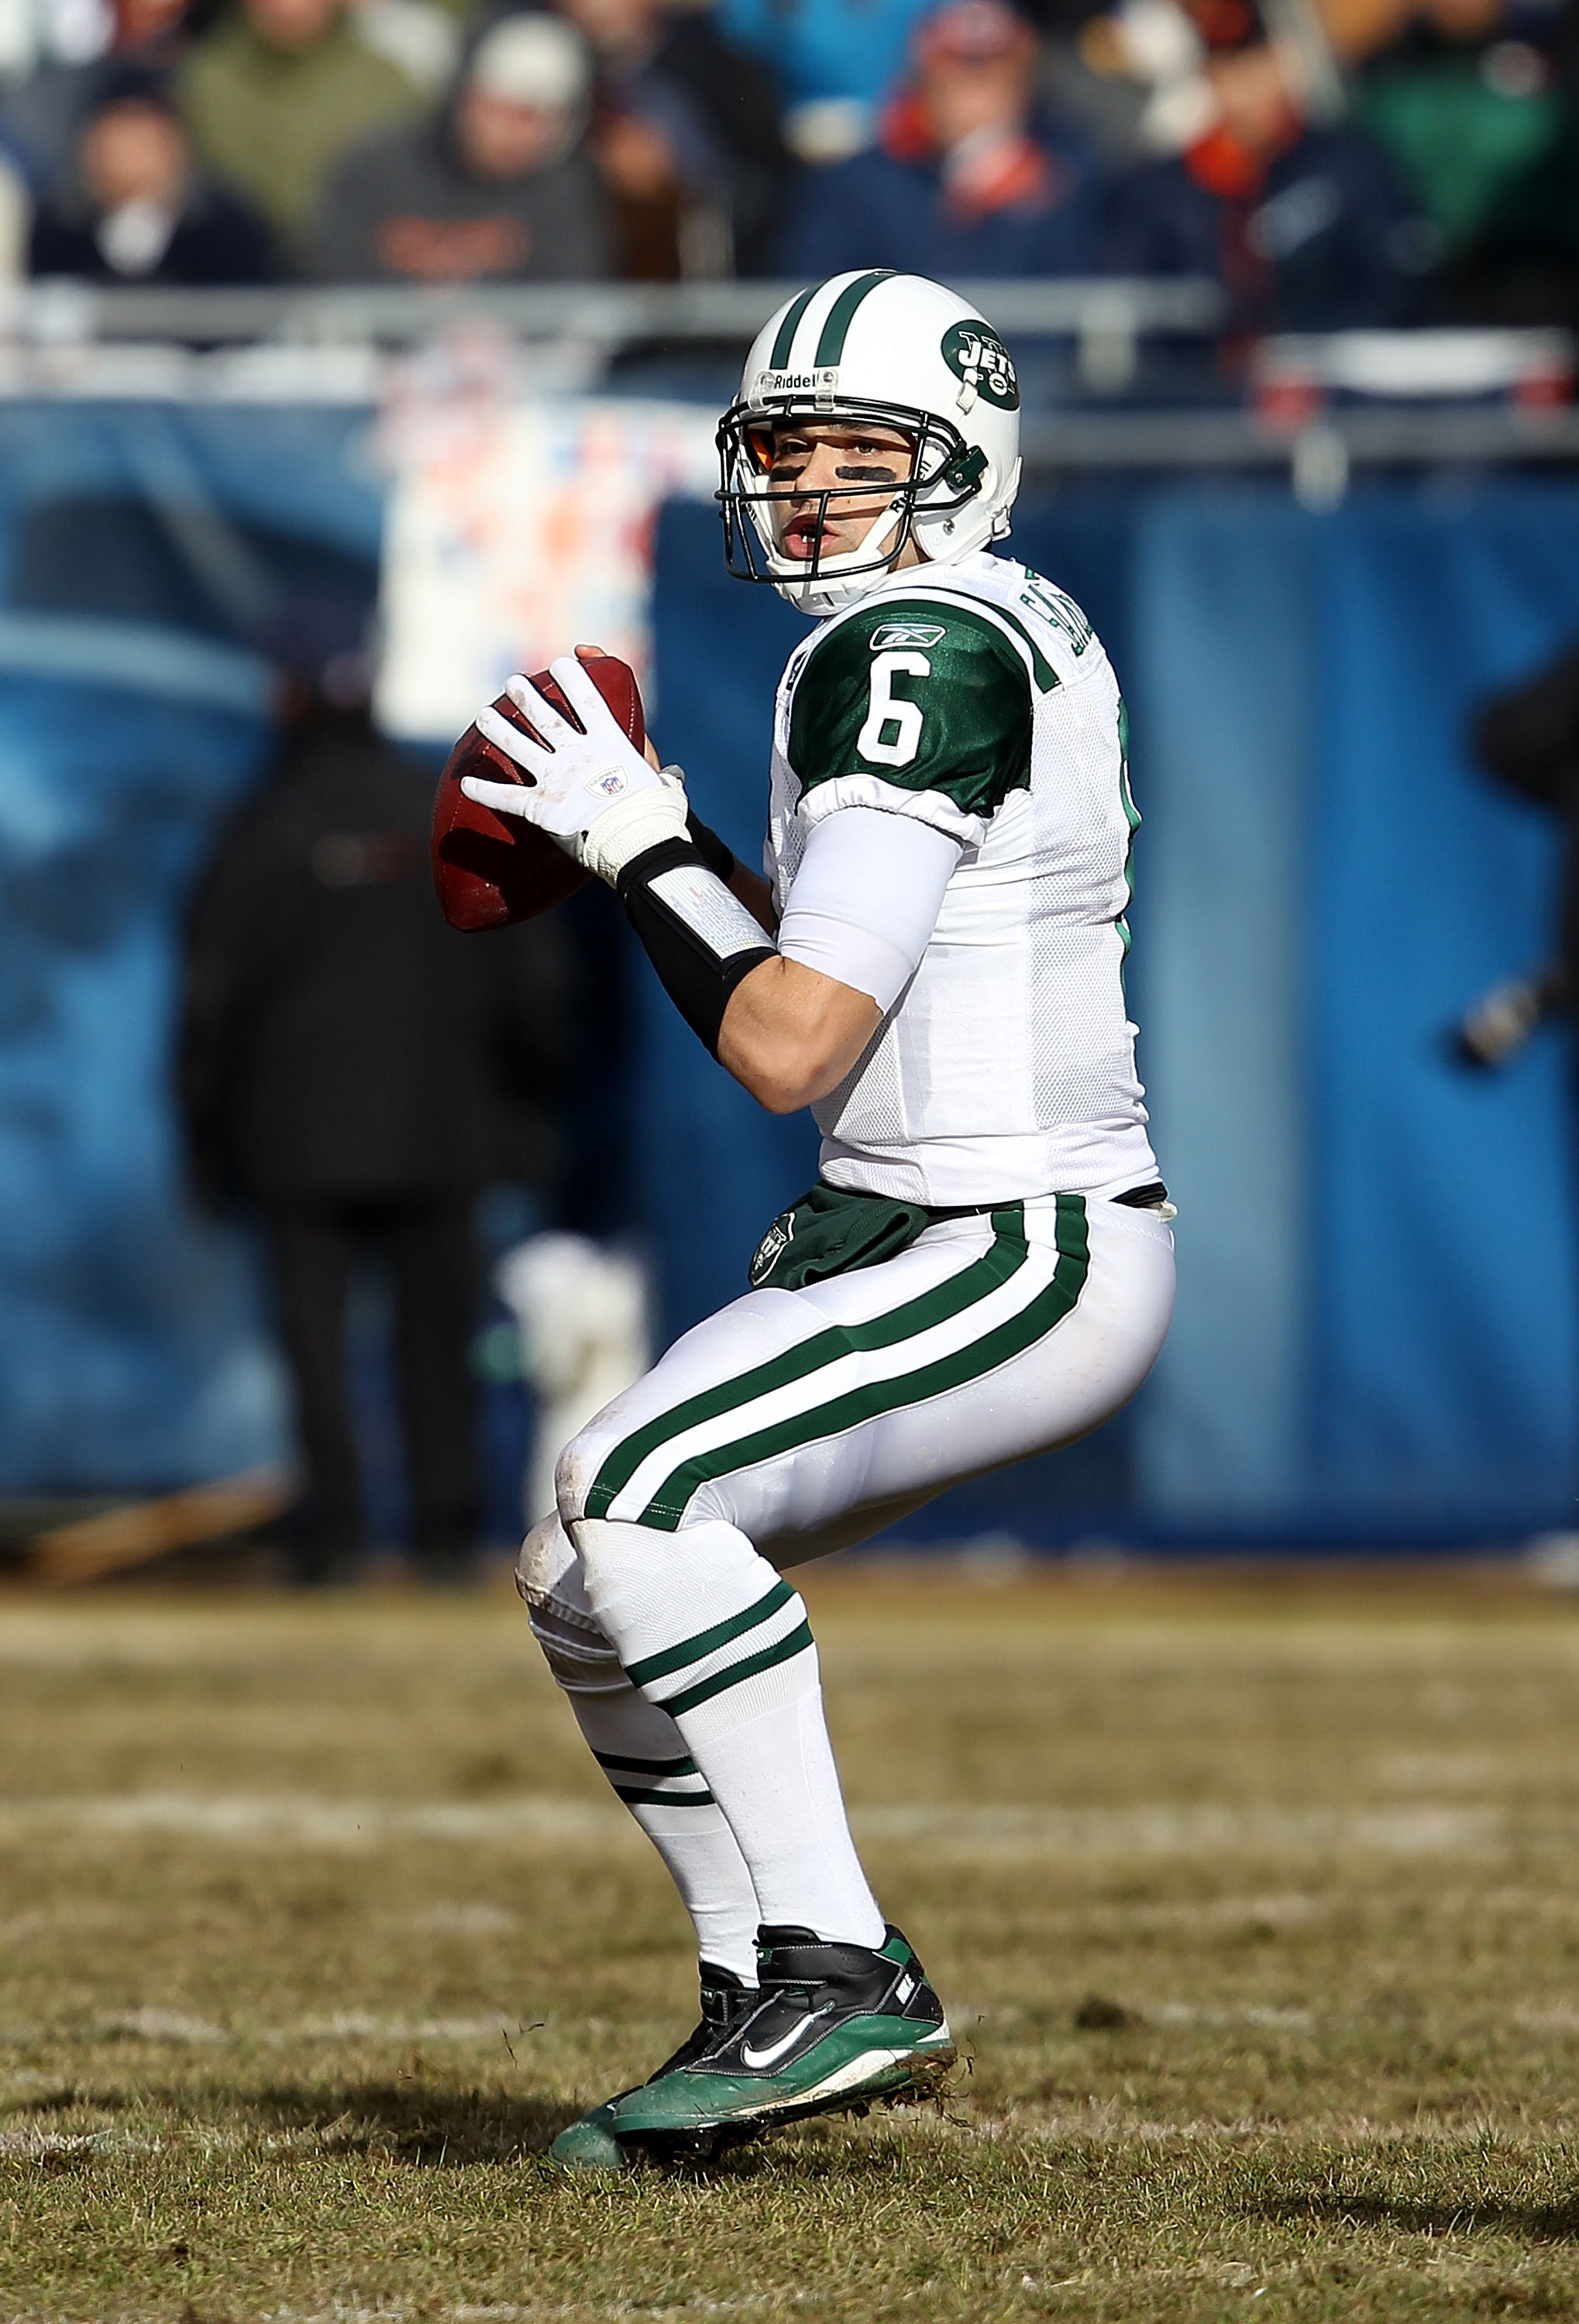 CHICAGO, IL - DECEMBER 26: Mark Sanchez #6 of the New York Jets looks for a receiver against the Chicago Bears at Soldier Field on December 26, 2010 in Chicago, Illinois. The Bears defeated the Jets 38-34. (Photo by Jonathan Daniel/Getty Images)